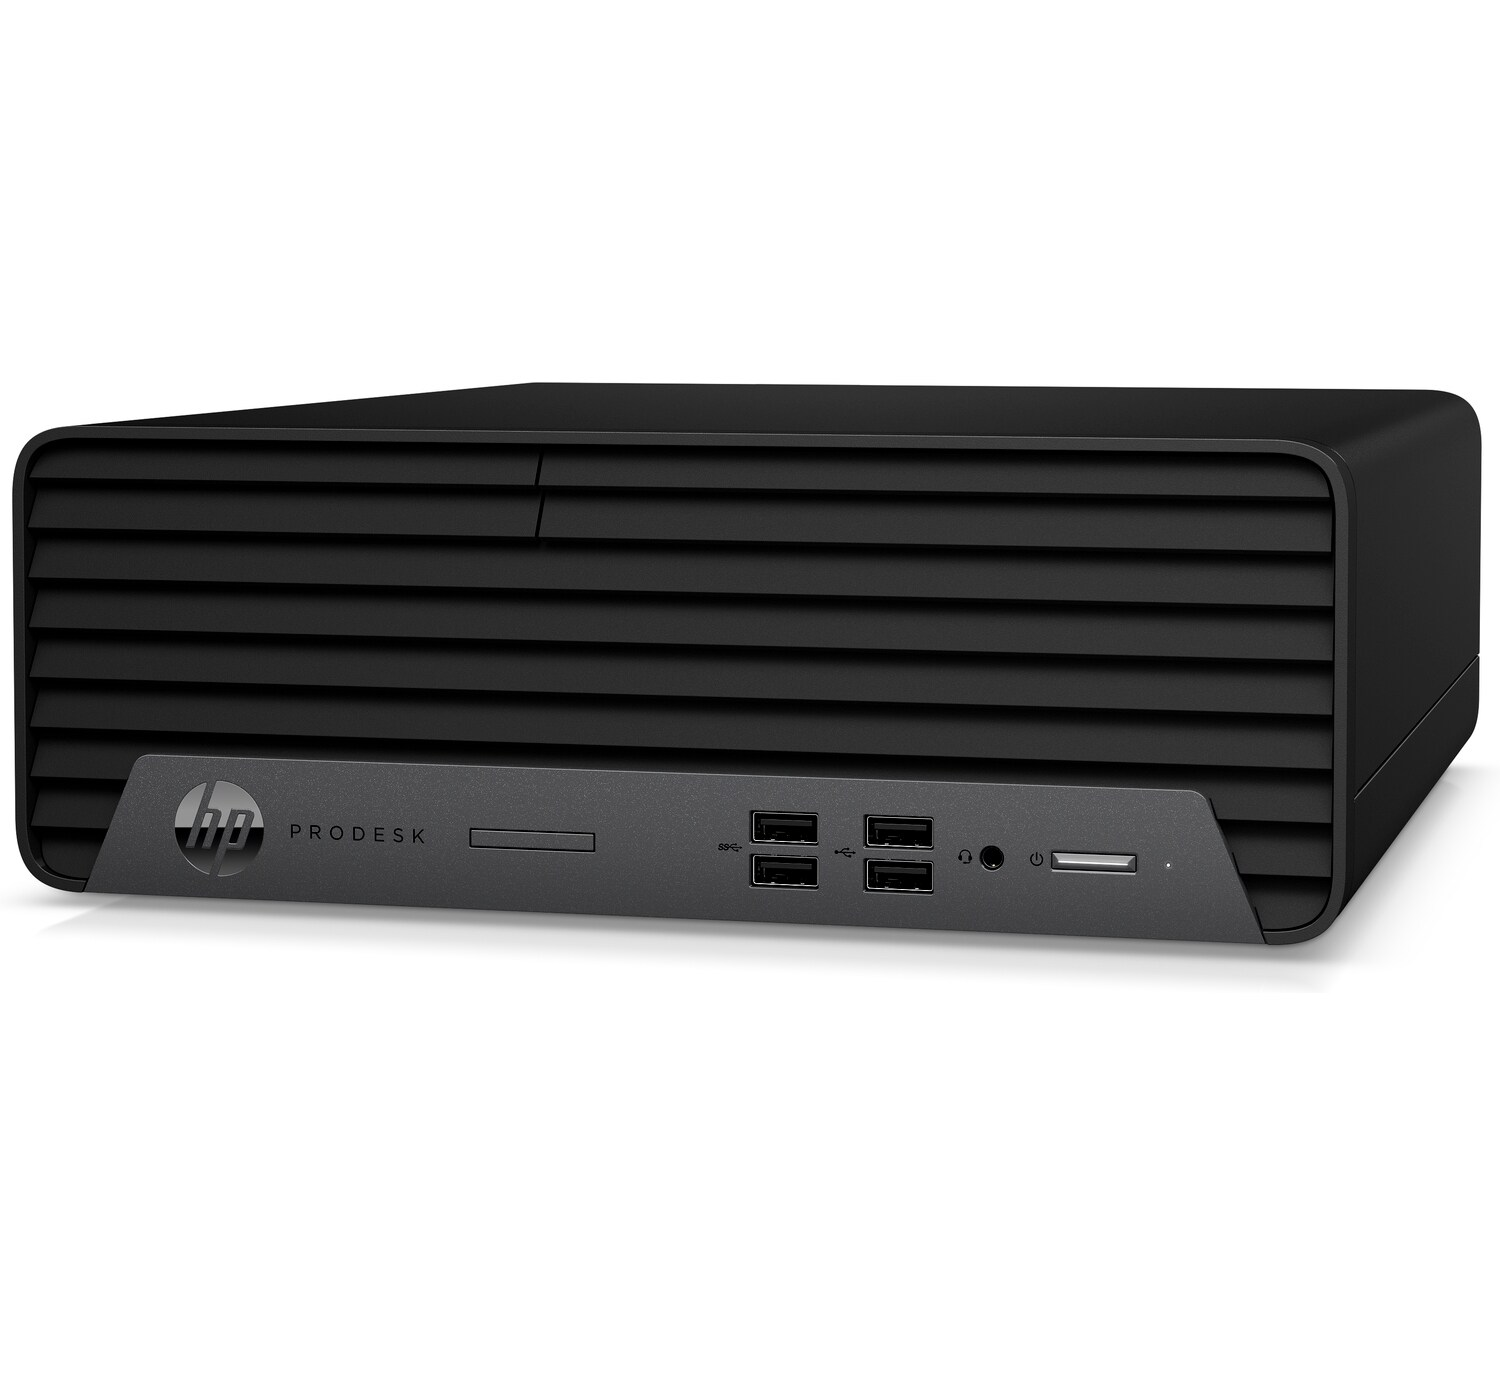 HP ProDesk 400 G7 SFF i3-10100 4.3GHz 8GB RAM 256GB SSD Small Form Factor Desktop with Windows 10 Pro